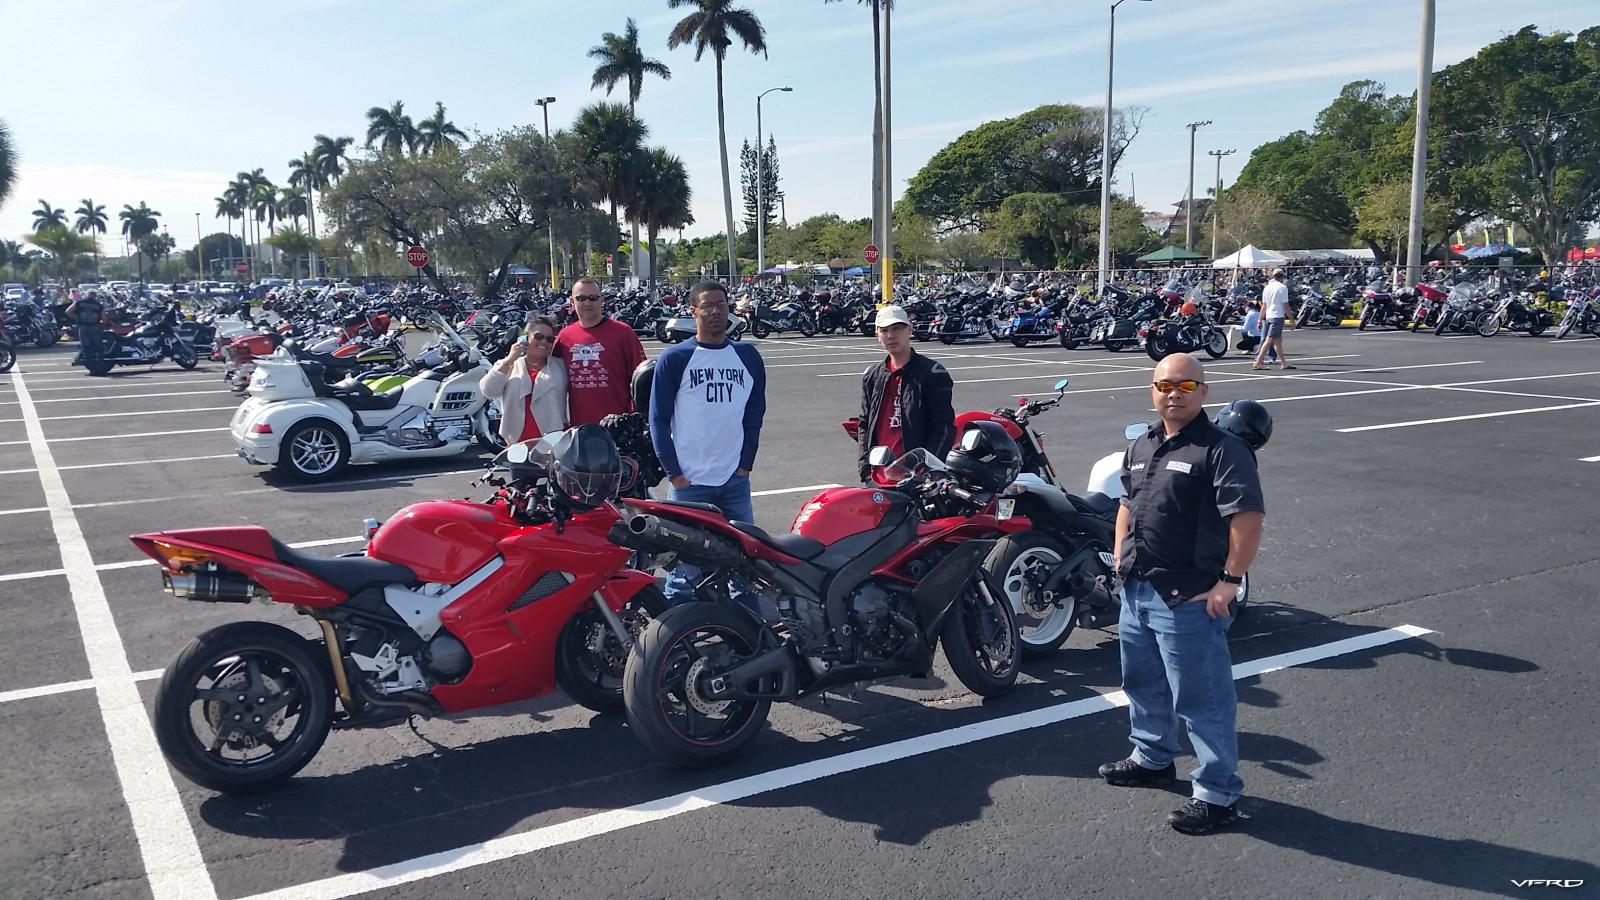 Dania Beach Vintage Motorcycle Show